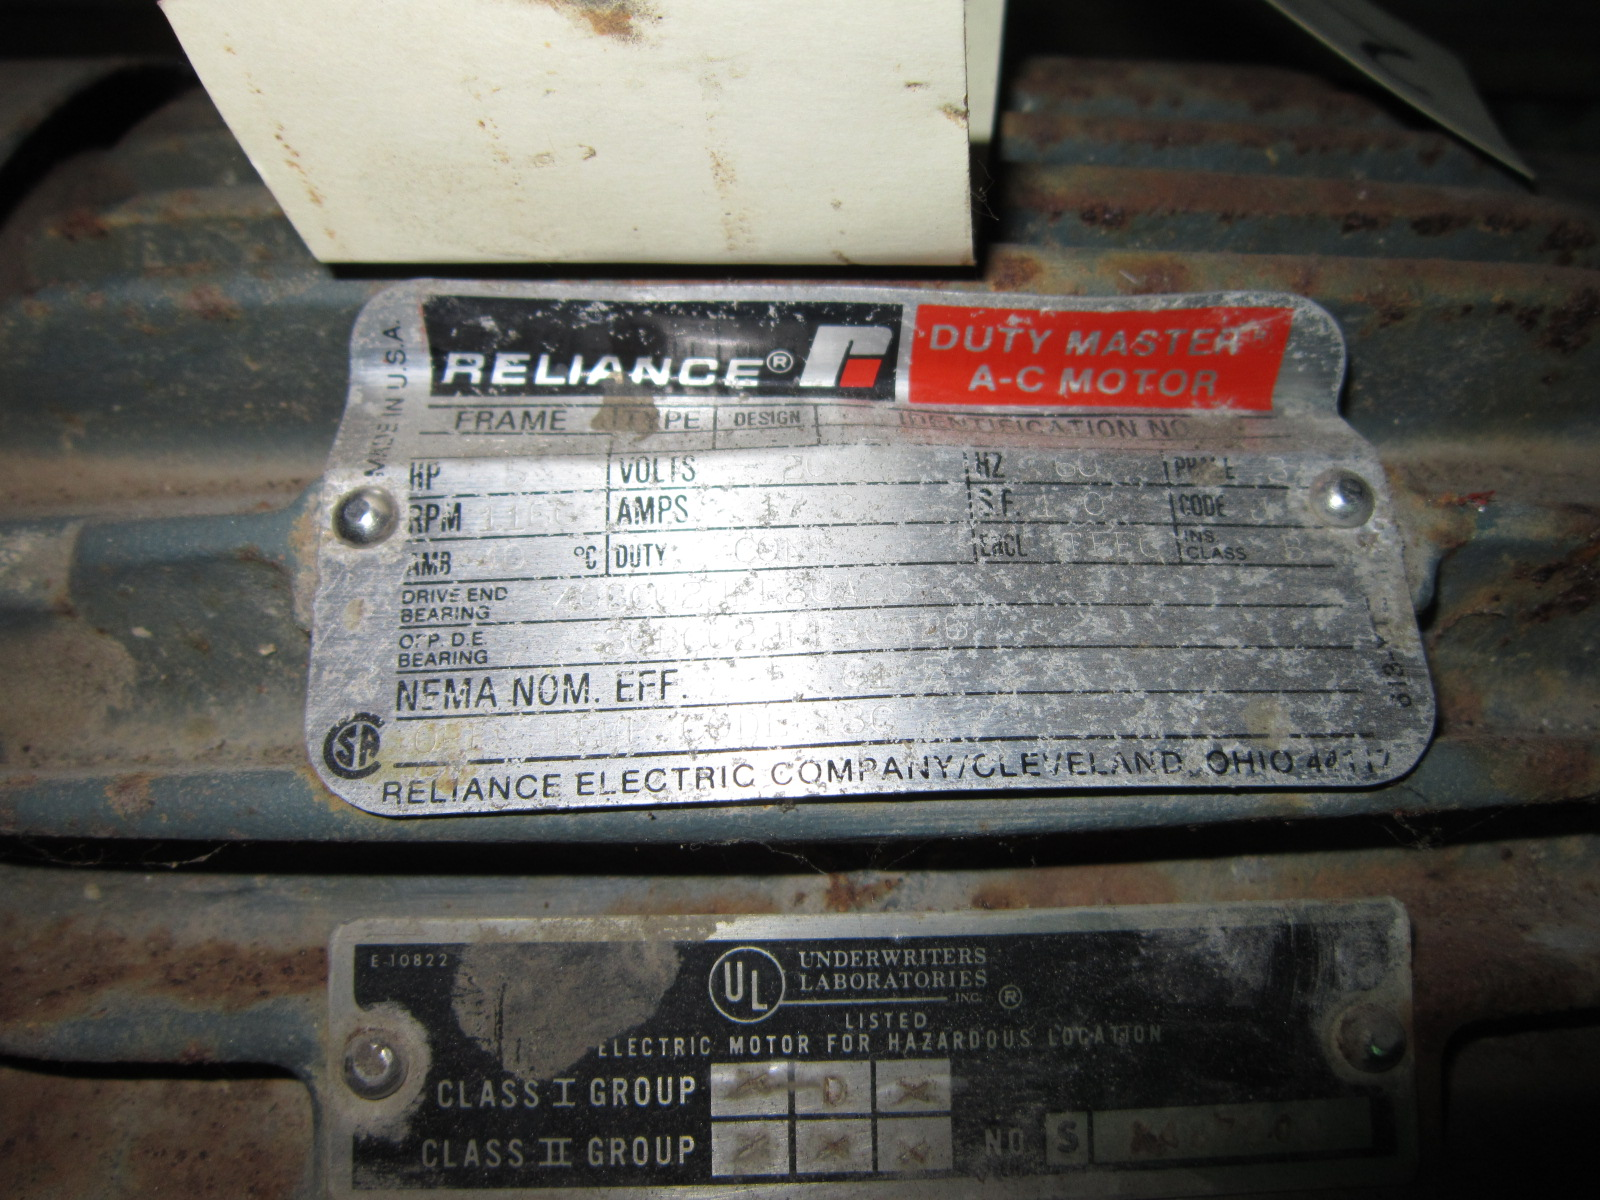 Reliance 5hp, 1160rpm, 208V, 7.2Amps, 3phase/60Hz, Cont. Duty, TEFC Motor